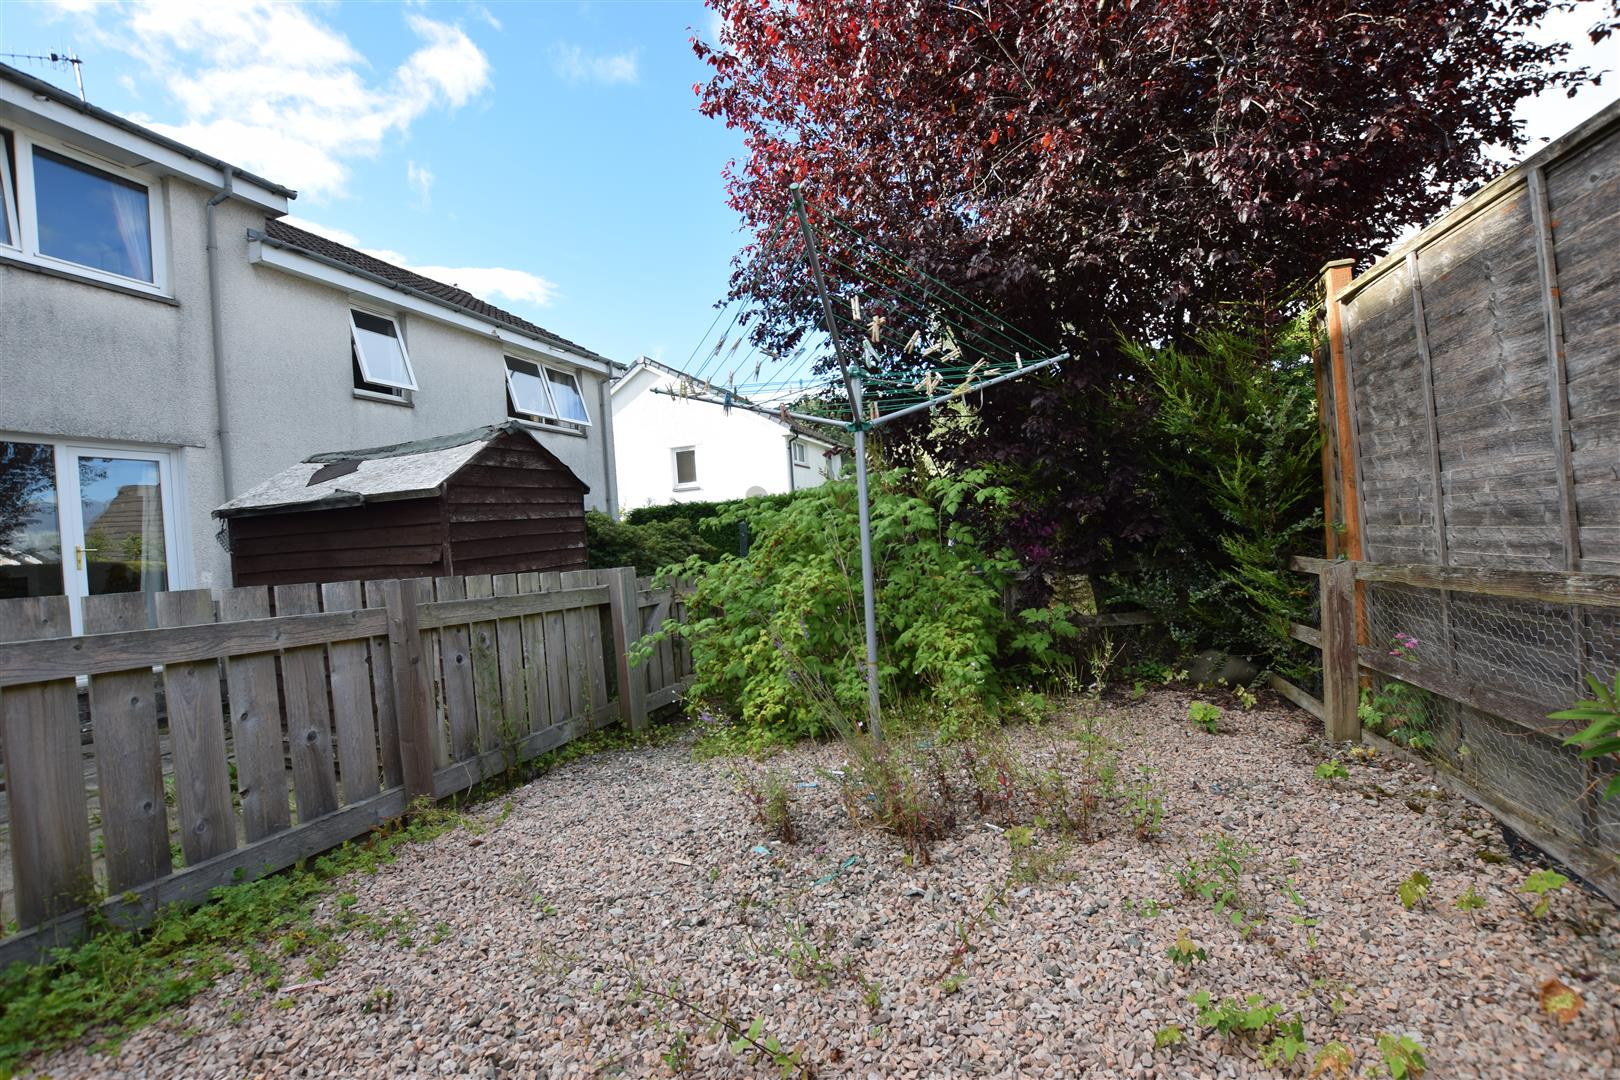 14, Youngs Court, Crieff, Perthshire, PH7 3SW, UK